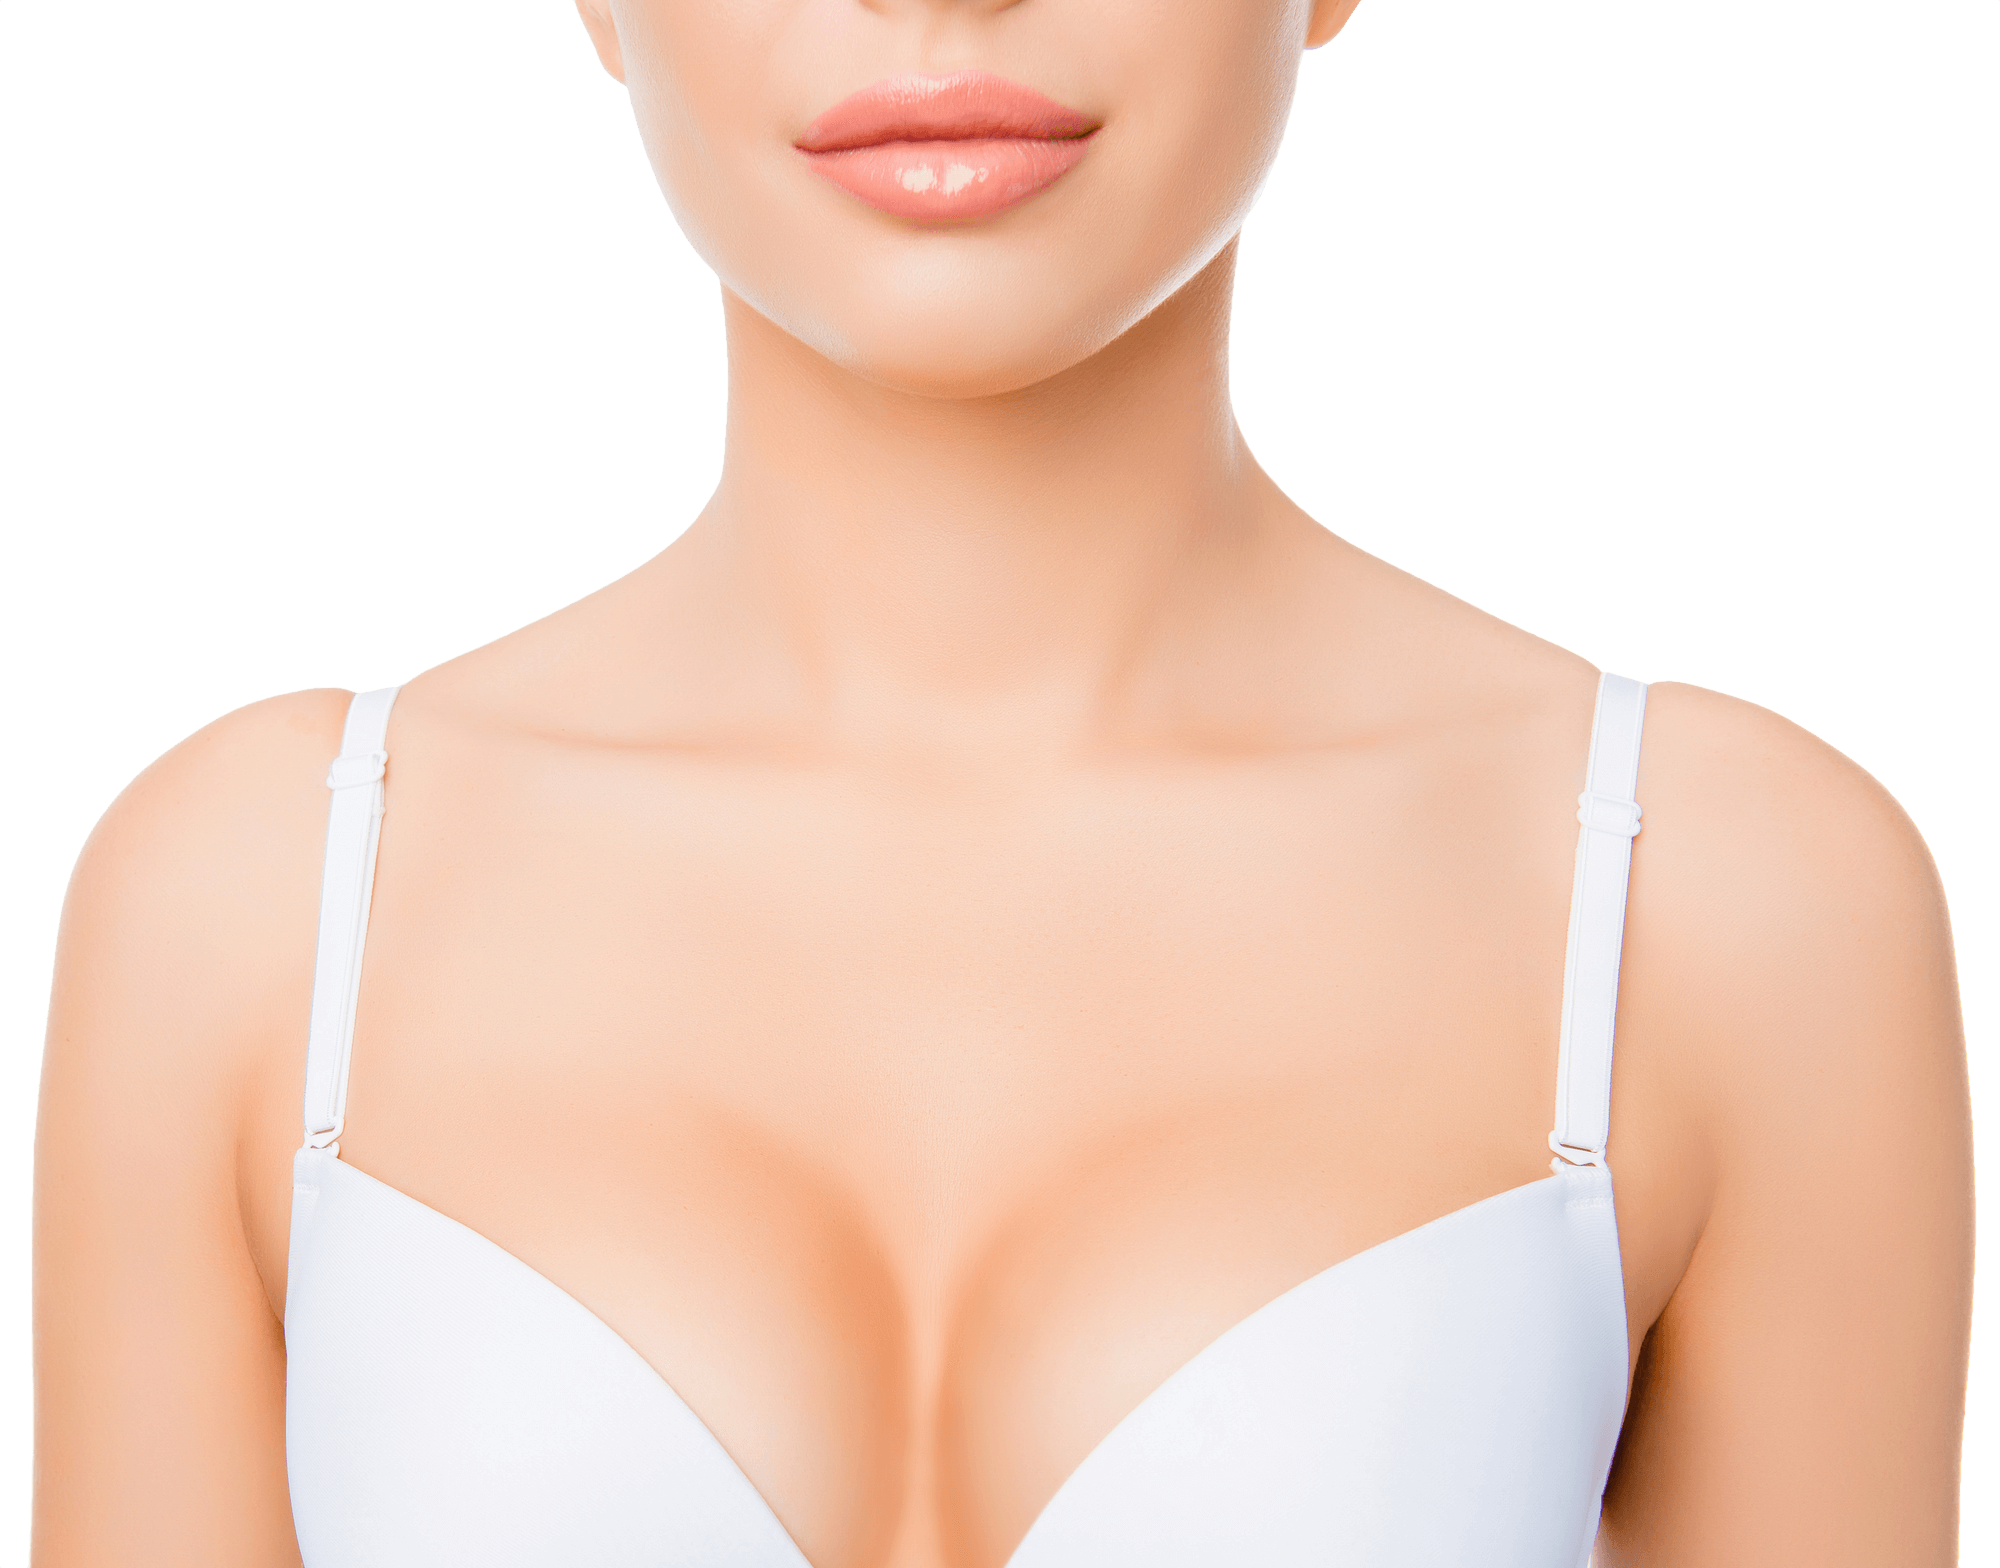 neck_chest_system_woman-2